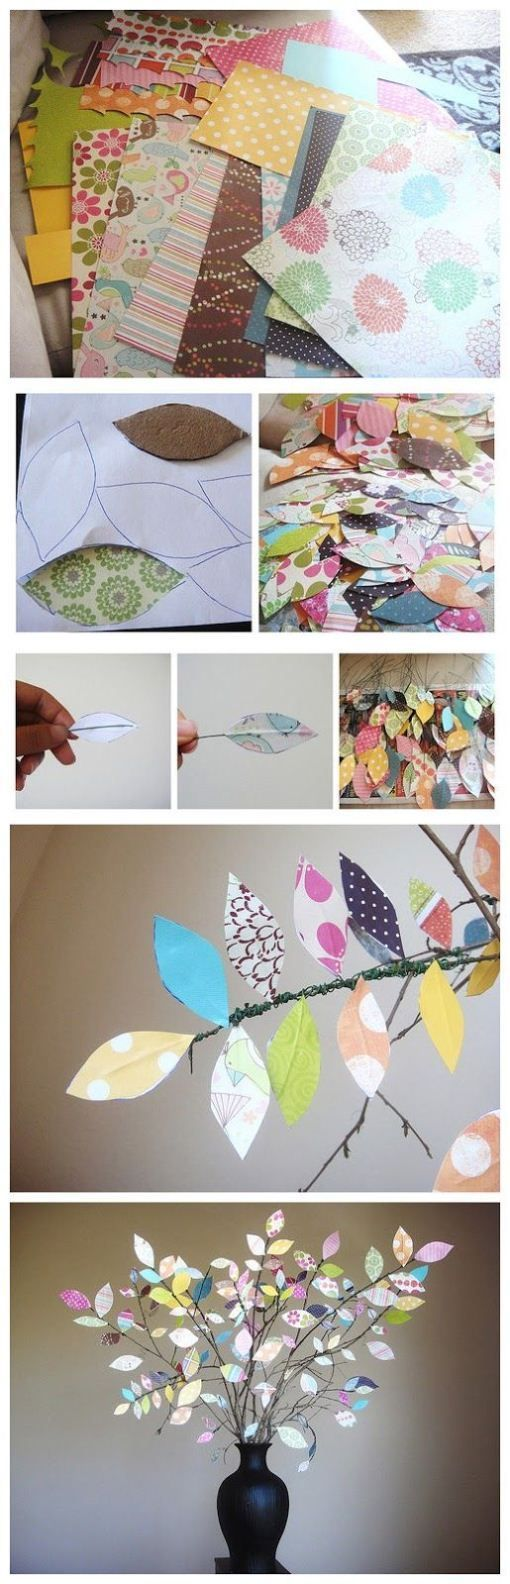 Branches of scrap book paper leafs crafts pinterest scrap diy scrapbook paper branches diy crafts craft ideas diy crafts do it yourself diy projects crafty do it yourself crafts solutioingenieria Image collections